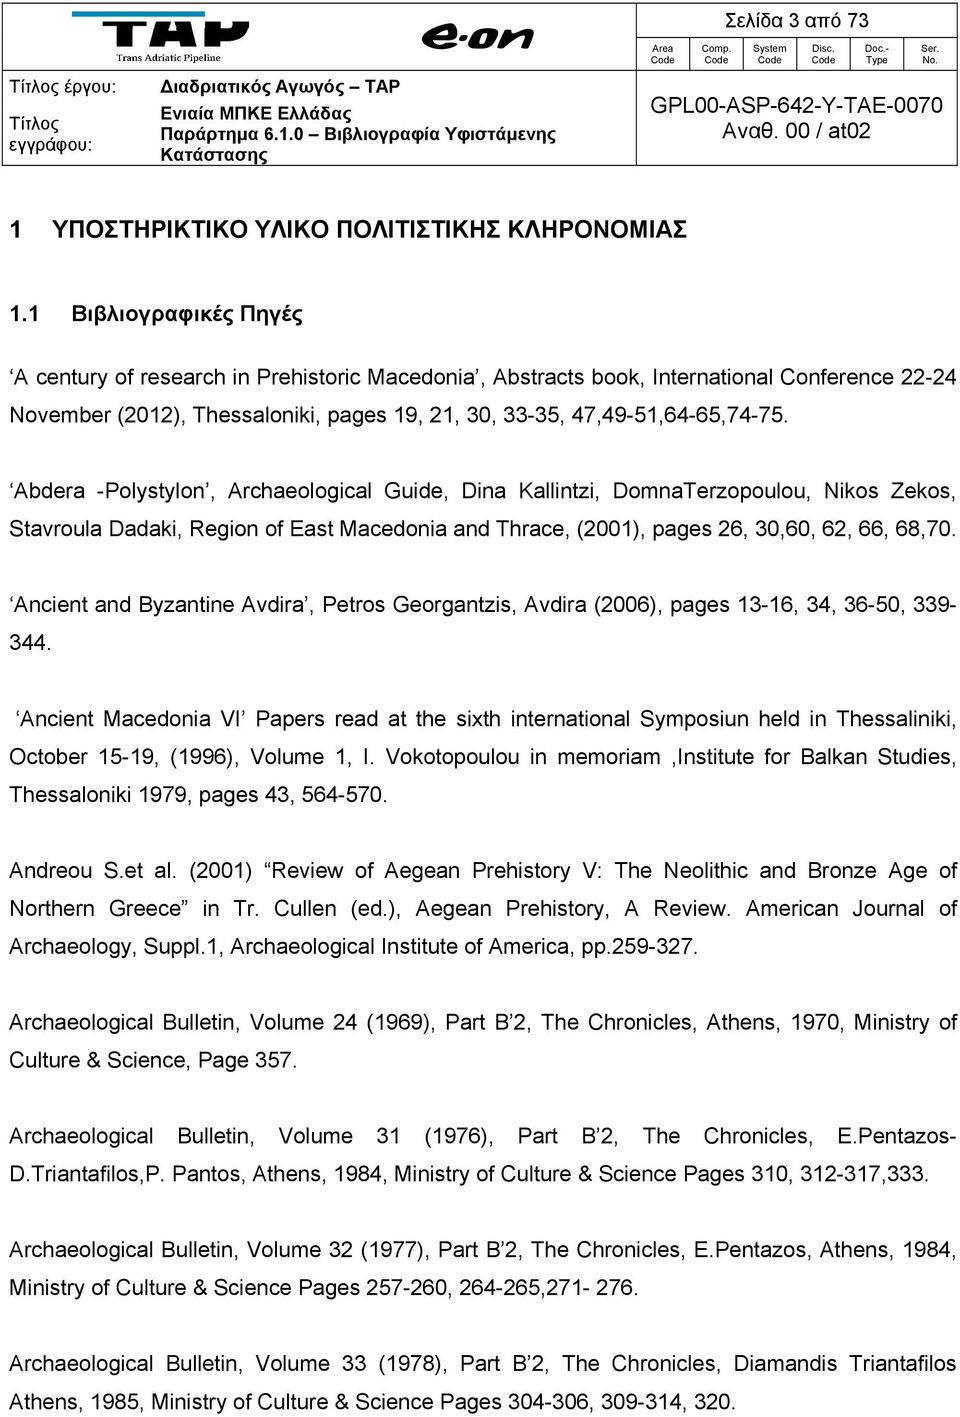 Abdera -Polystylon, Archaeological Guide, Dina Kallintzi, DomnaTerzopoulou, Nikos Zekos, Stavroula Dadaki, Region of East Macedonia and Thrace, (2001), pages 26, 30,60, 62, 66, 68,70.